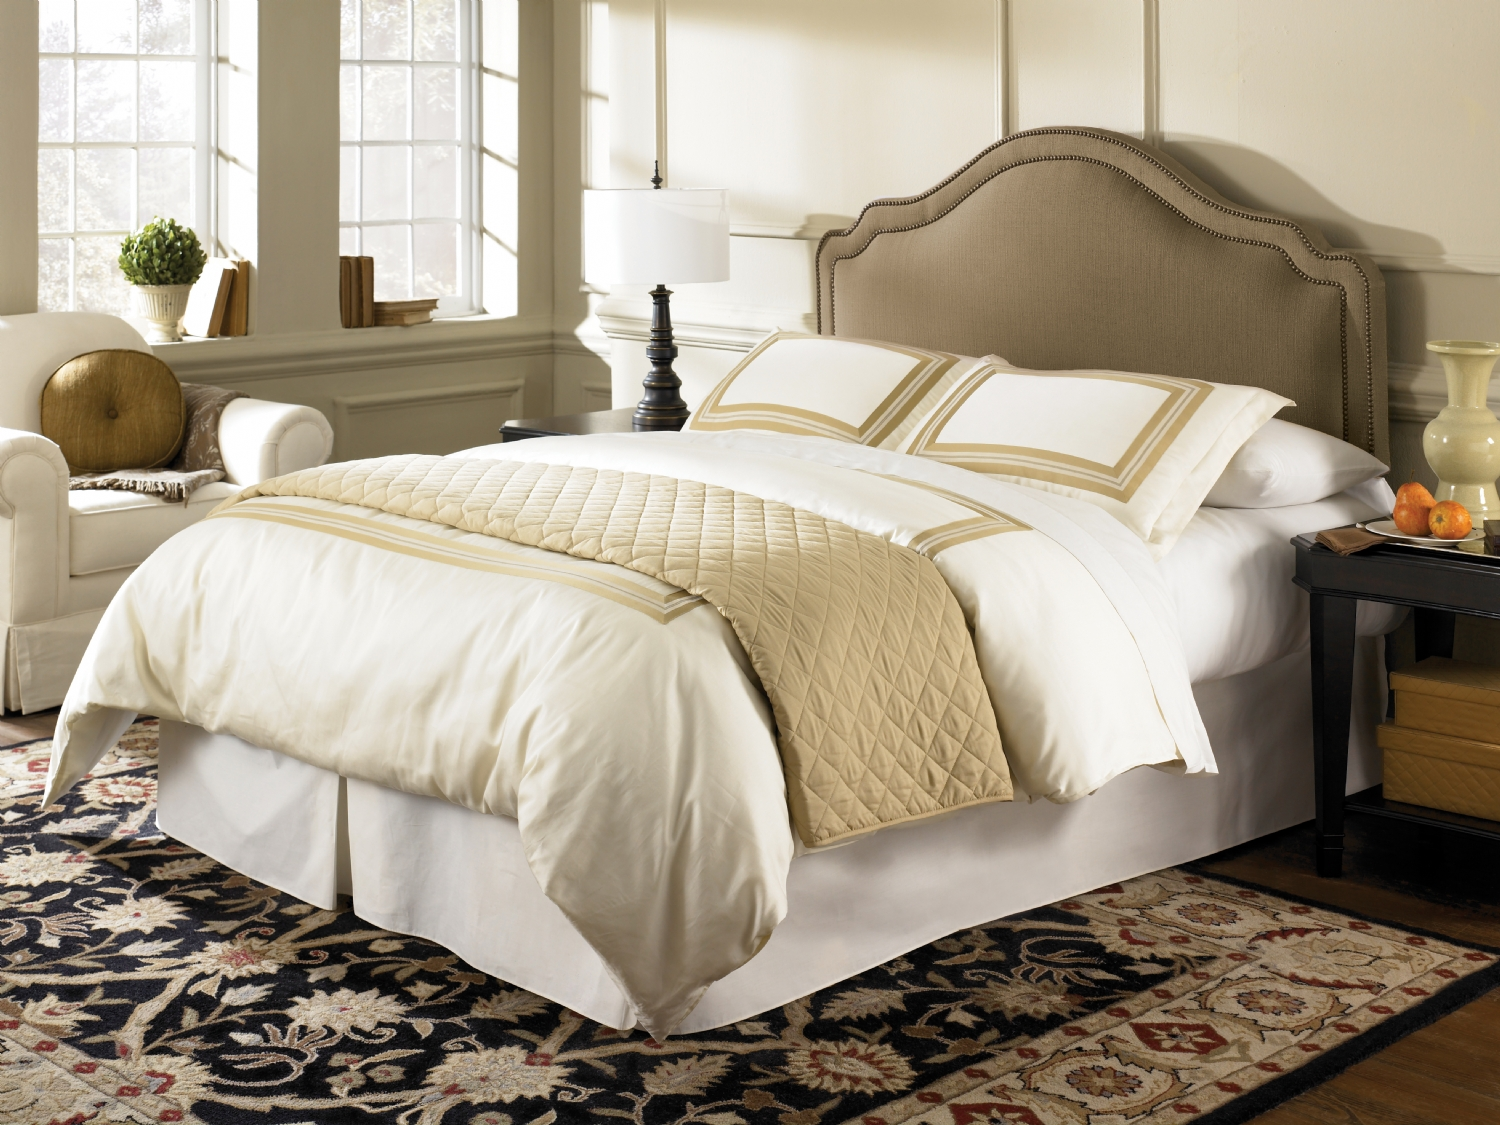 Adjustable Queen Headboard : Adjustable beds